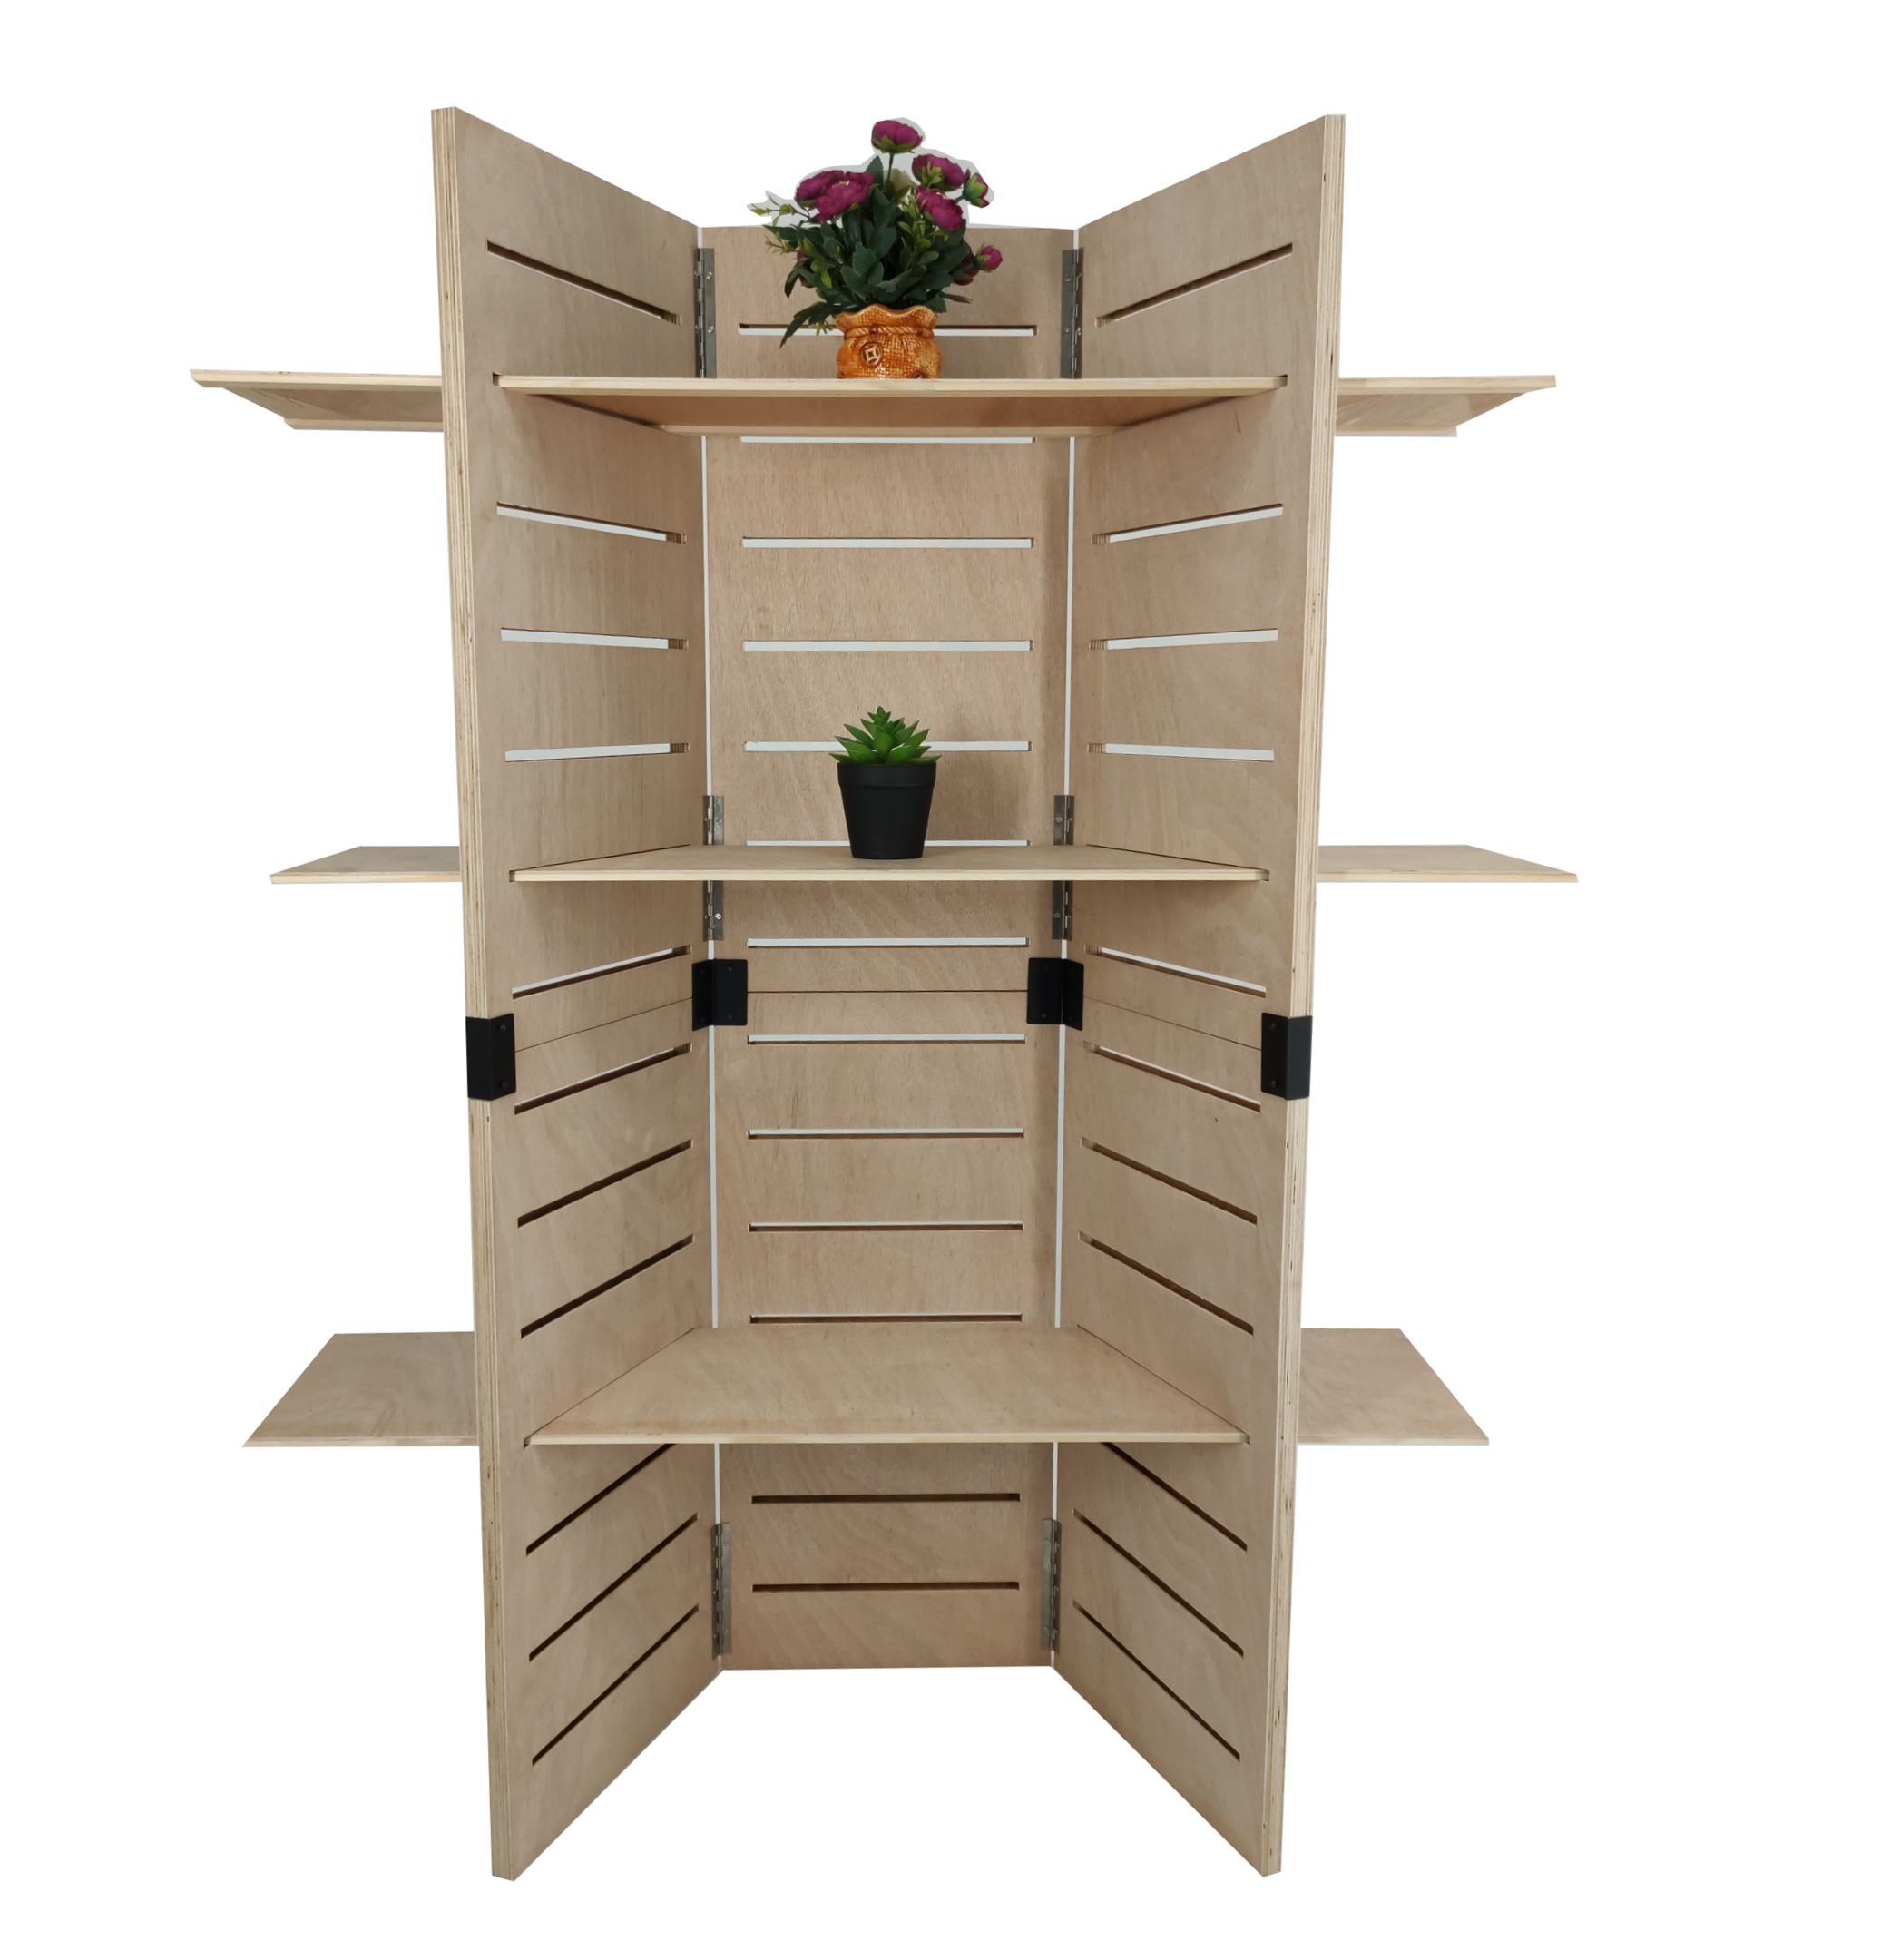 com kitchen wide home dining casual bookshelf amazon dp bookcase walnut shelf collapsible folding